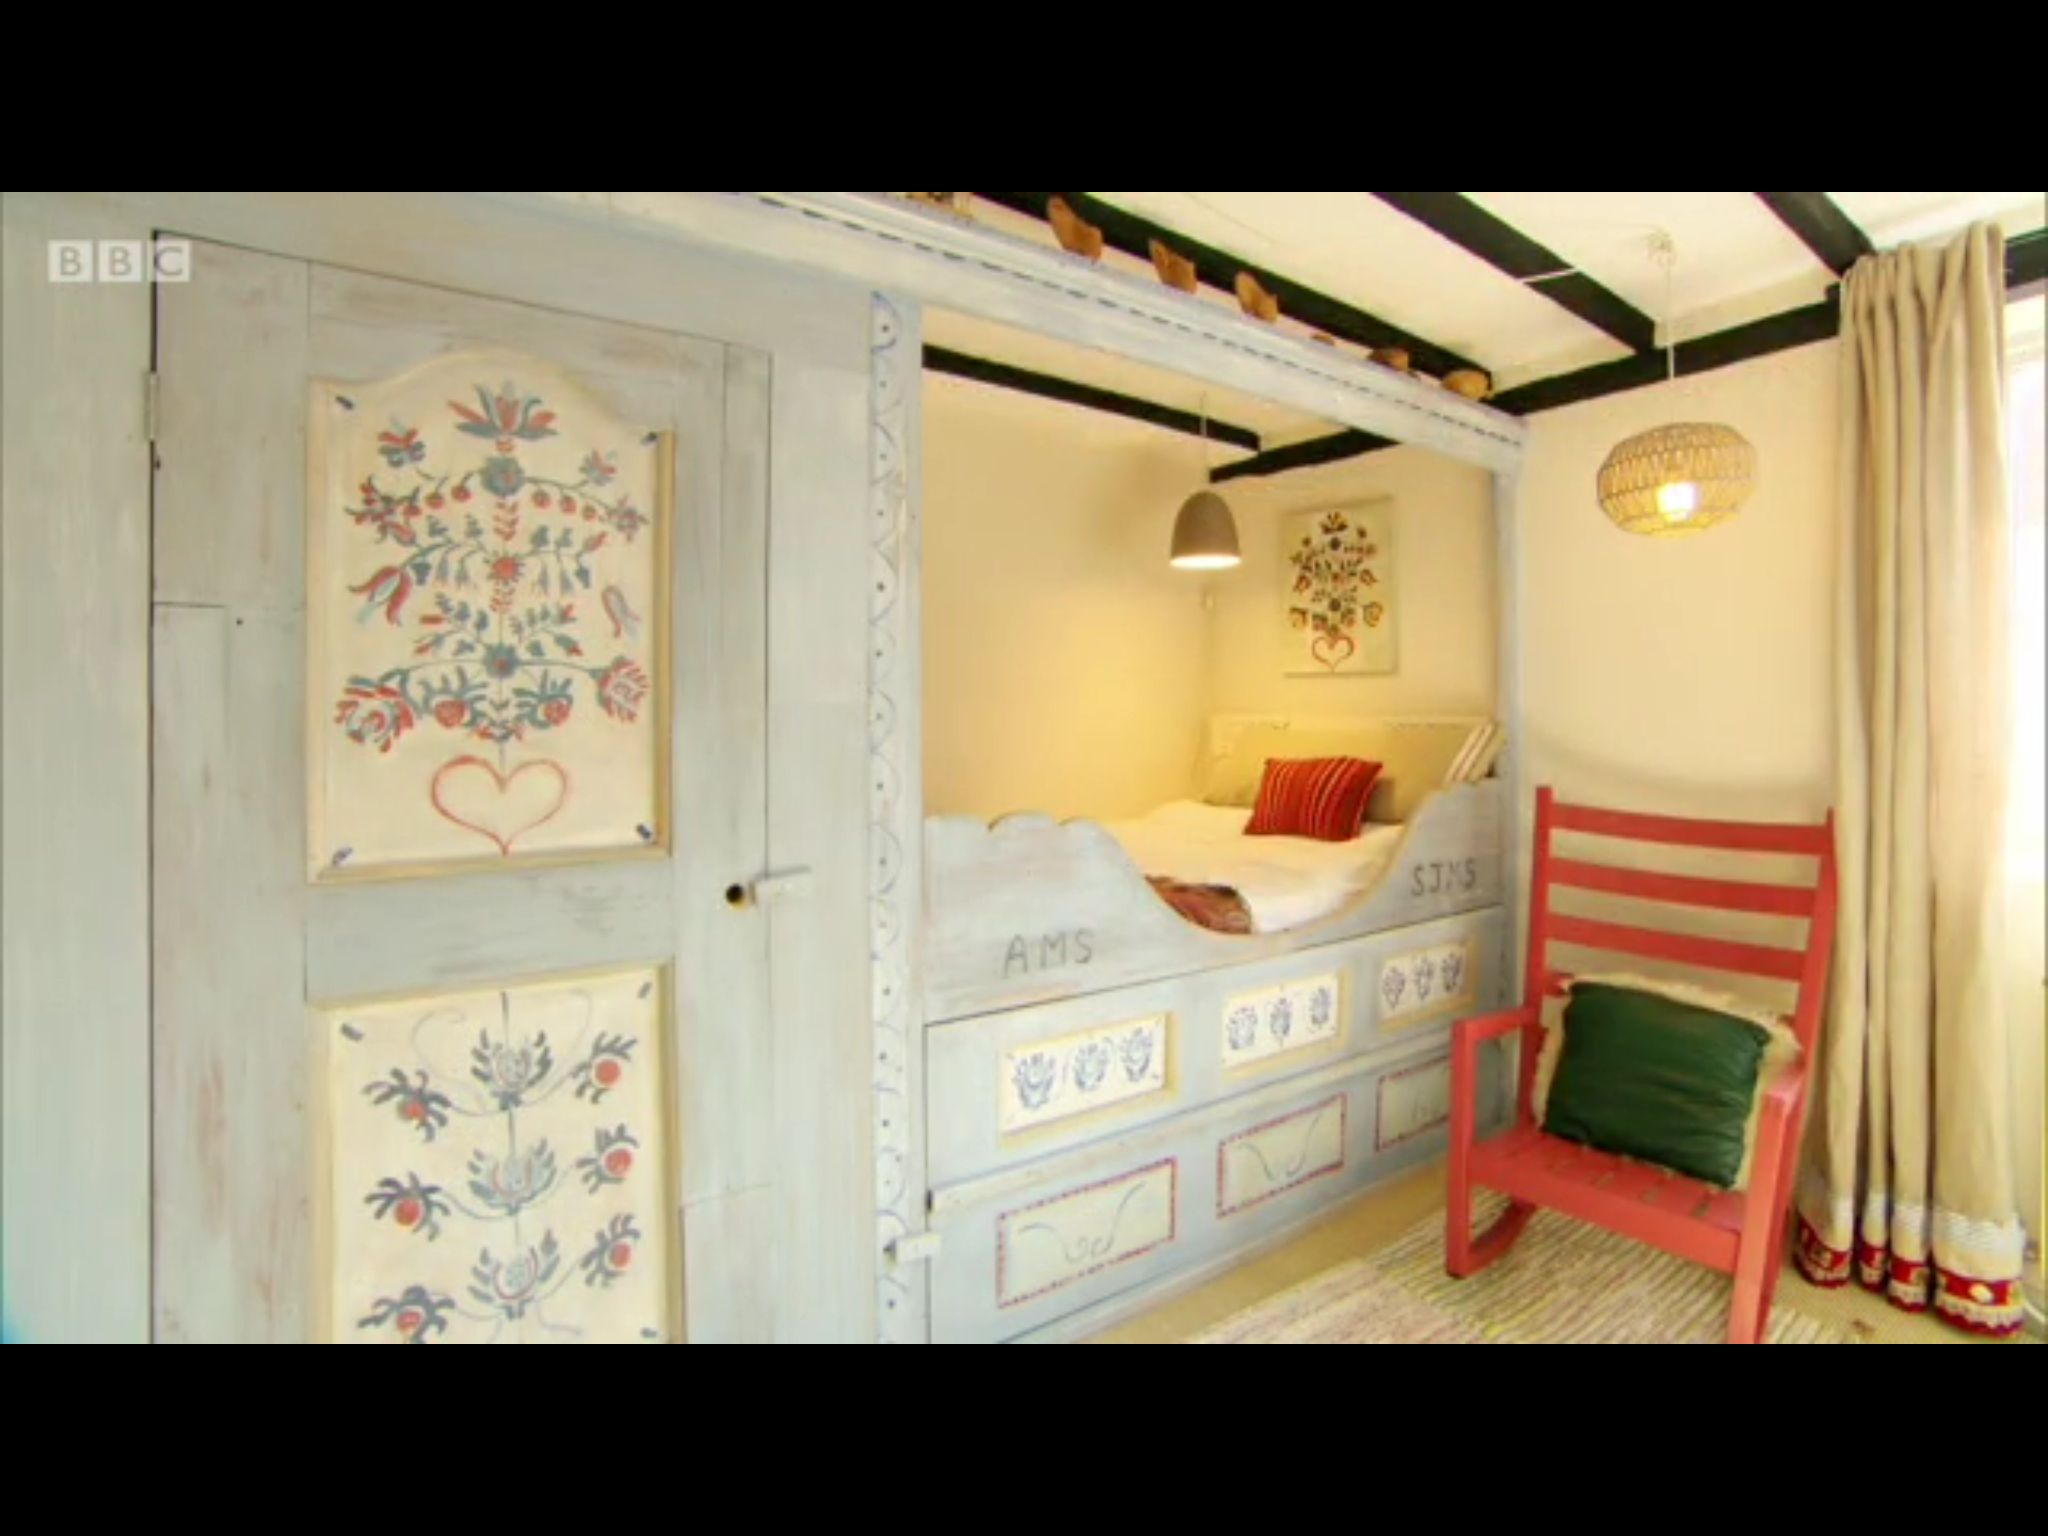 Marvelous The Great Interior Design Challenge BBC 2016